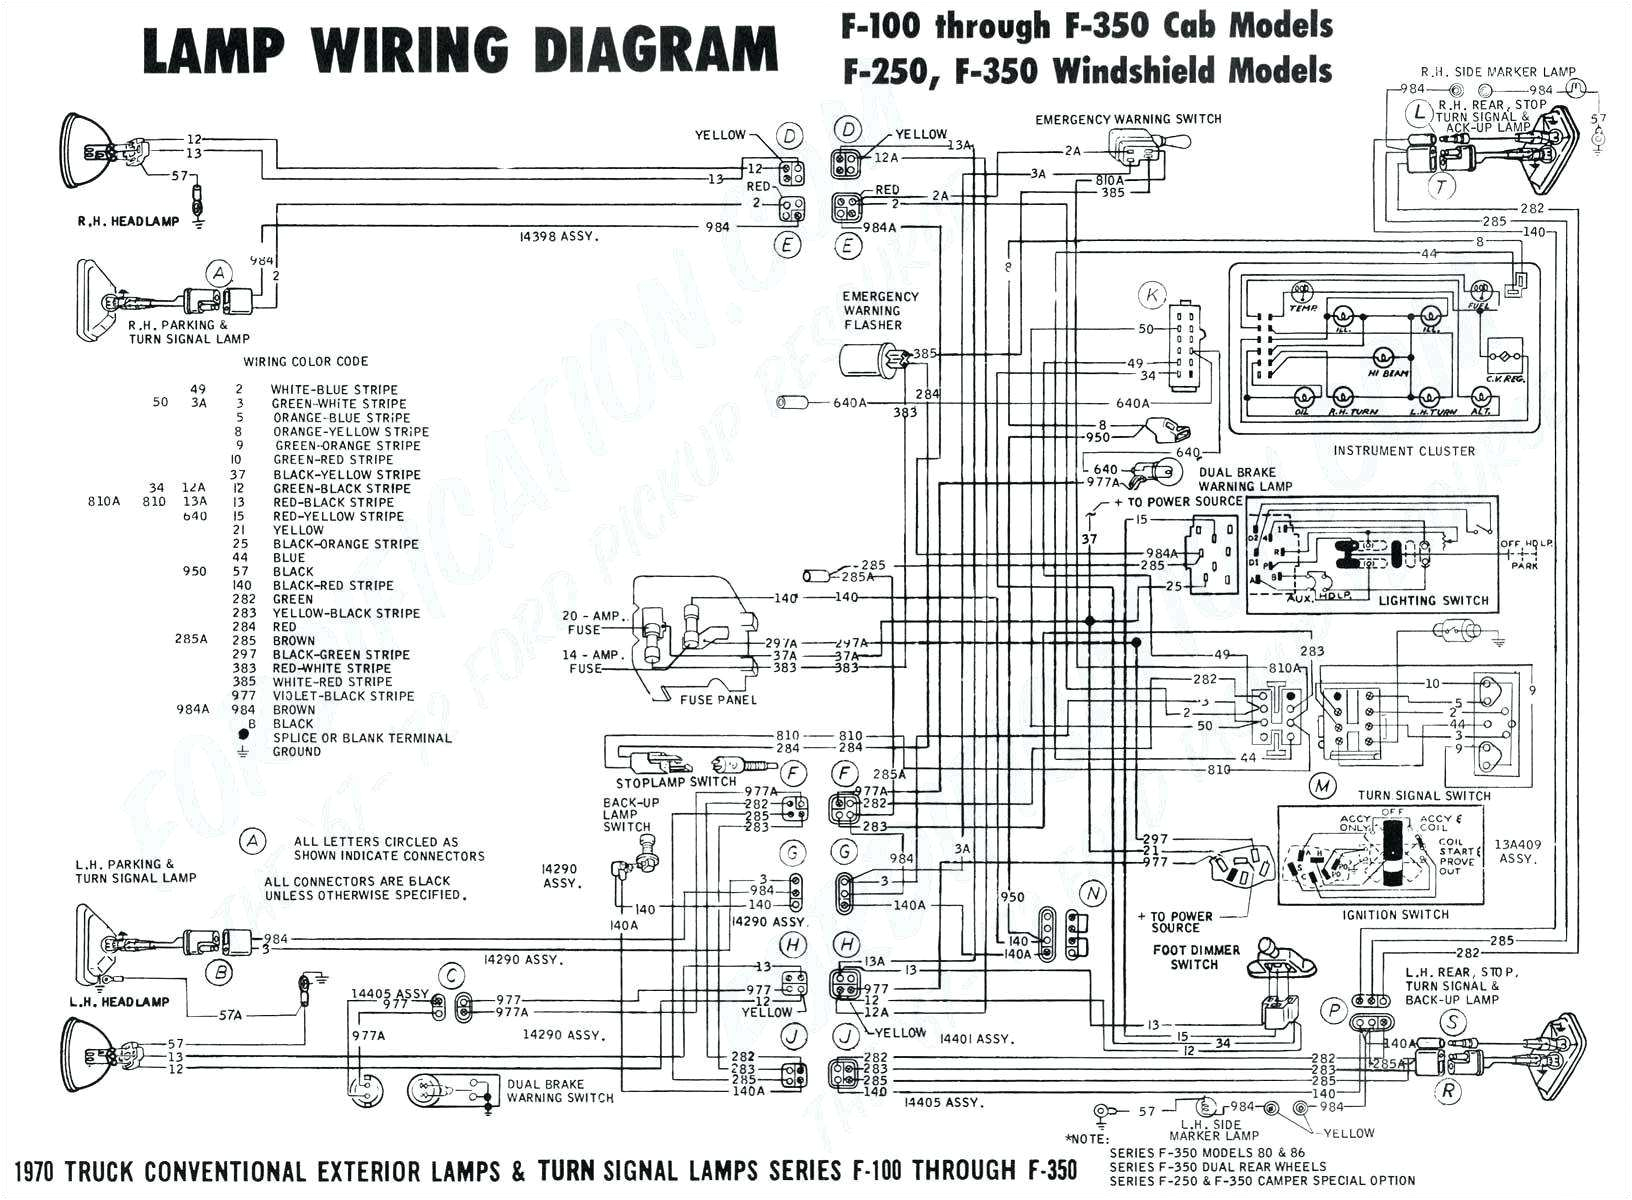 1982 dodge fuse box diagram problem wiring diagram new old fuse box problems fuse box problem